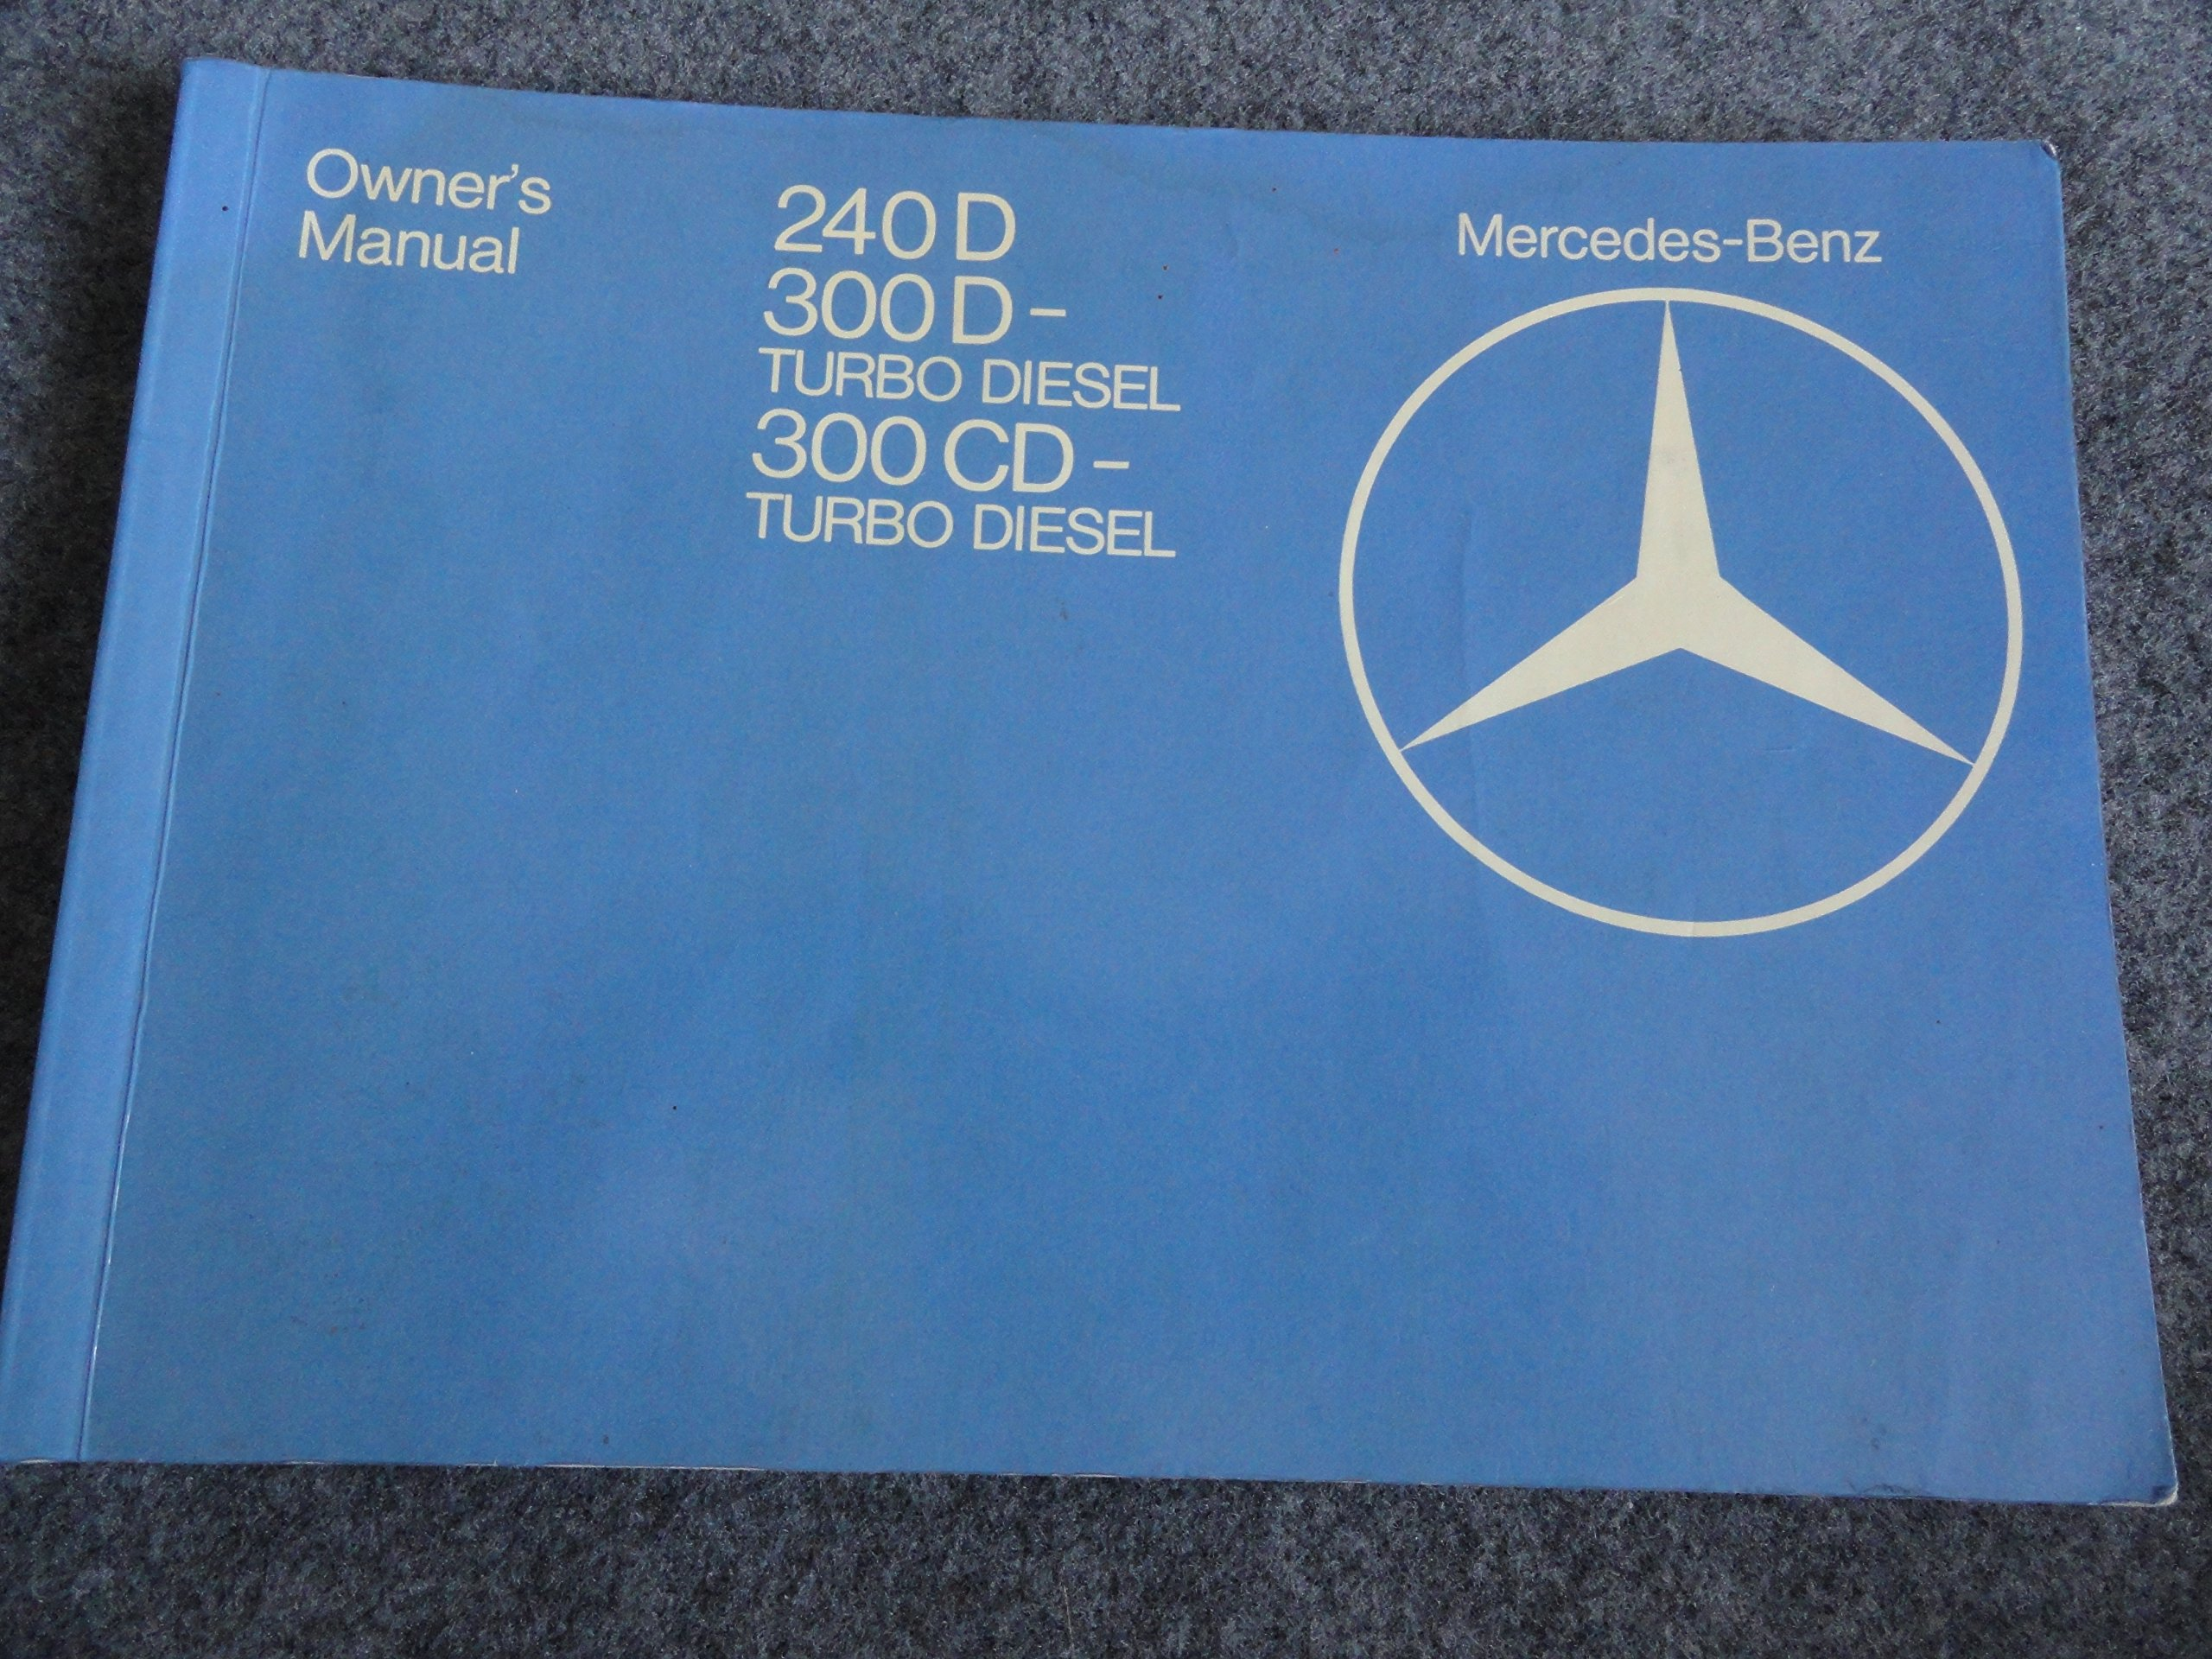 1982 Mercedes Benz 240D 300D 300CD Owners Manual 240 D 300 CD Turbo Diesel Paperback – 1982